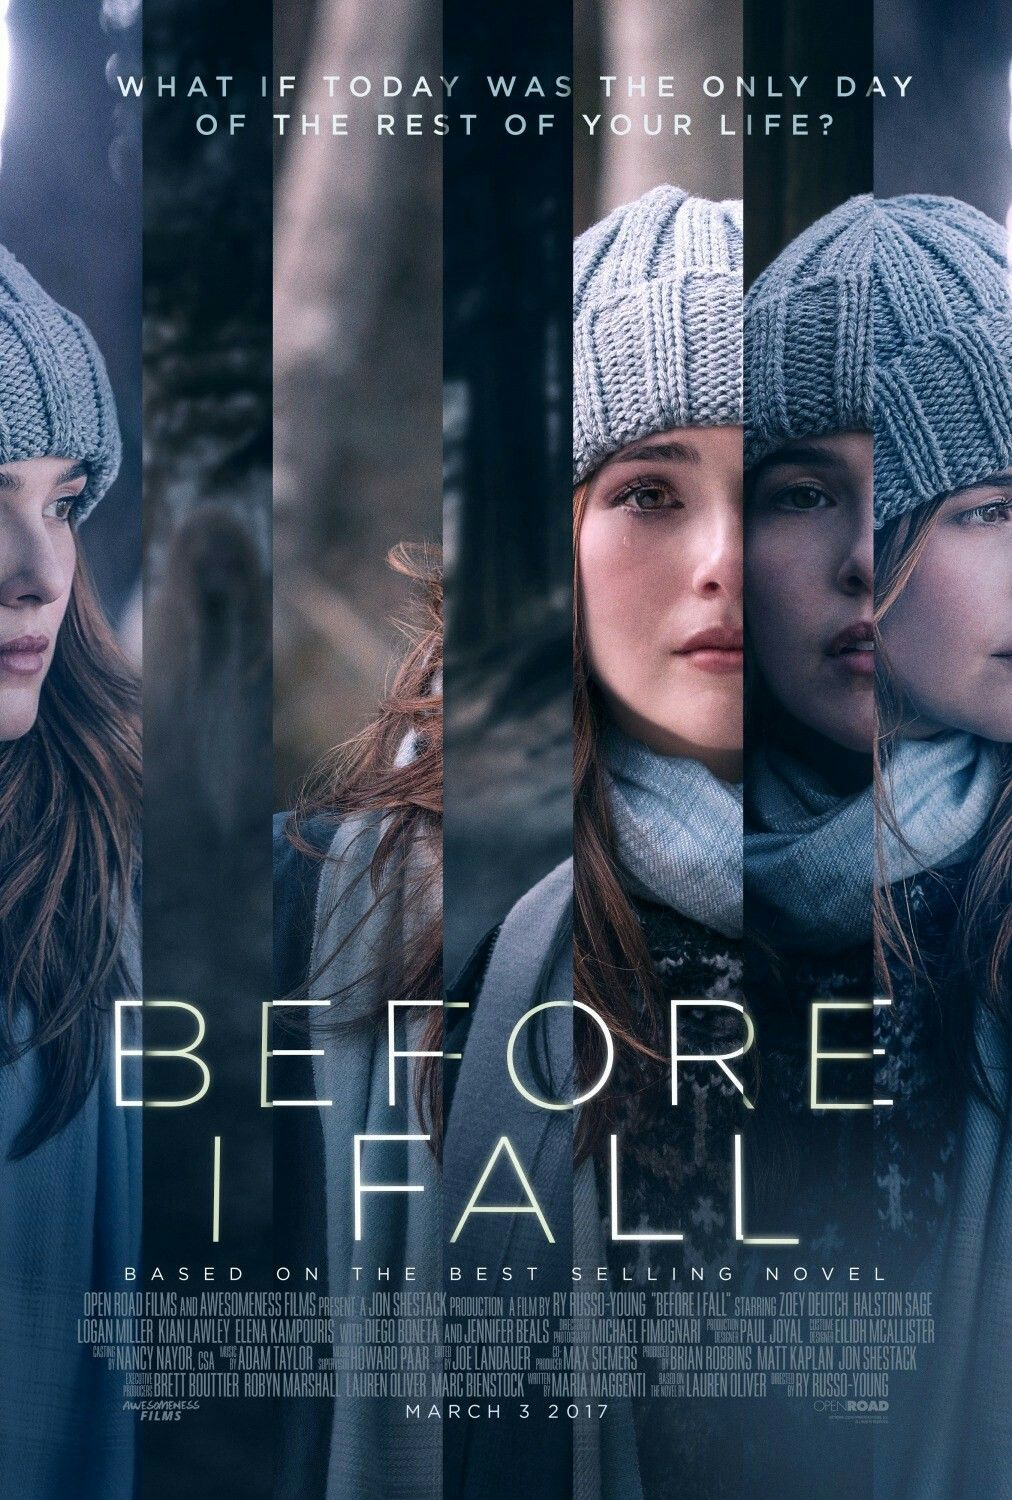 Before I Fall Saw This Movie A Week Ago Incredible It Made Me Think Everything In My Life Again Romantic Movies Good Movies Romance Movies